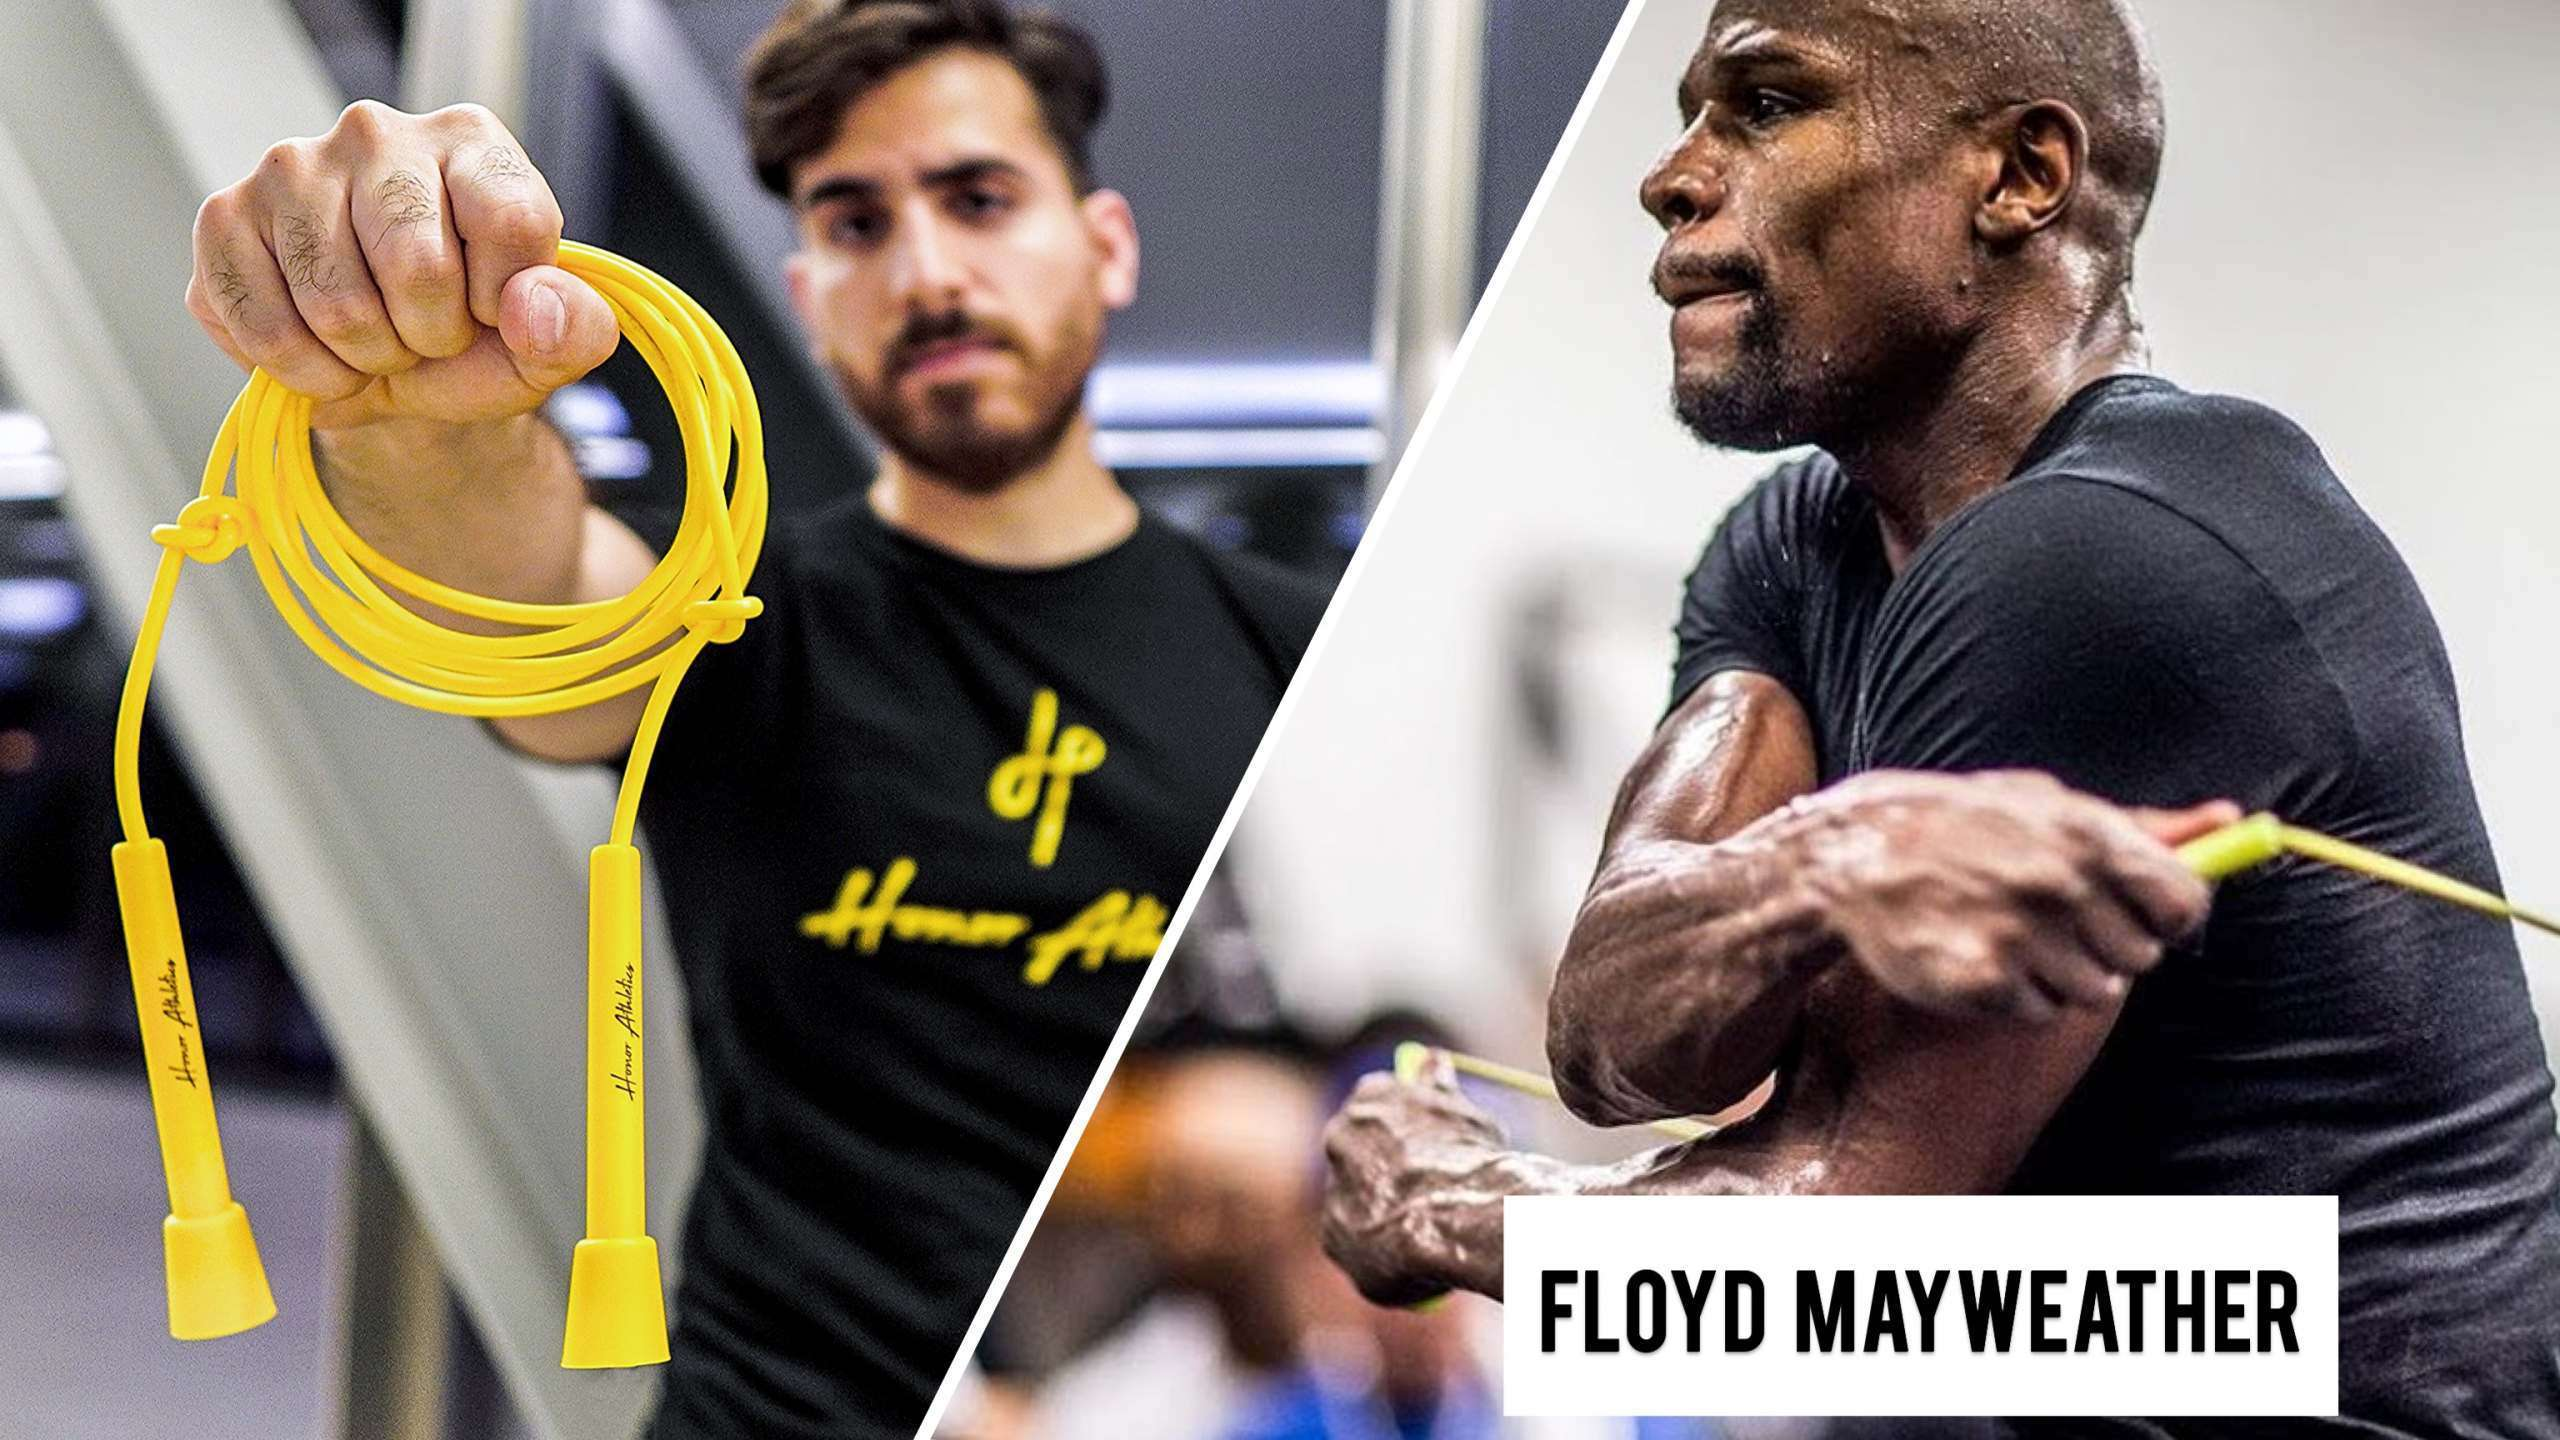 Without a doubt, anyone would be impressed by Floyd Mayweather jump rope skills!!